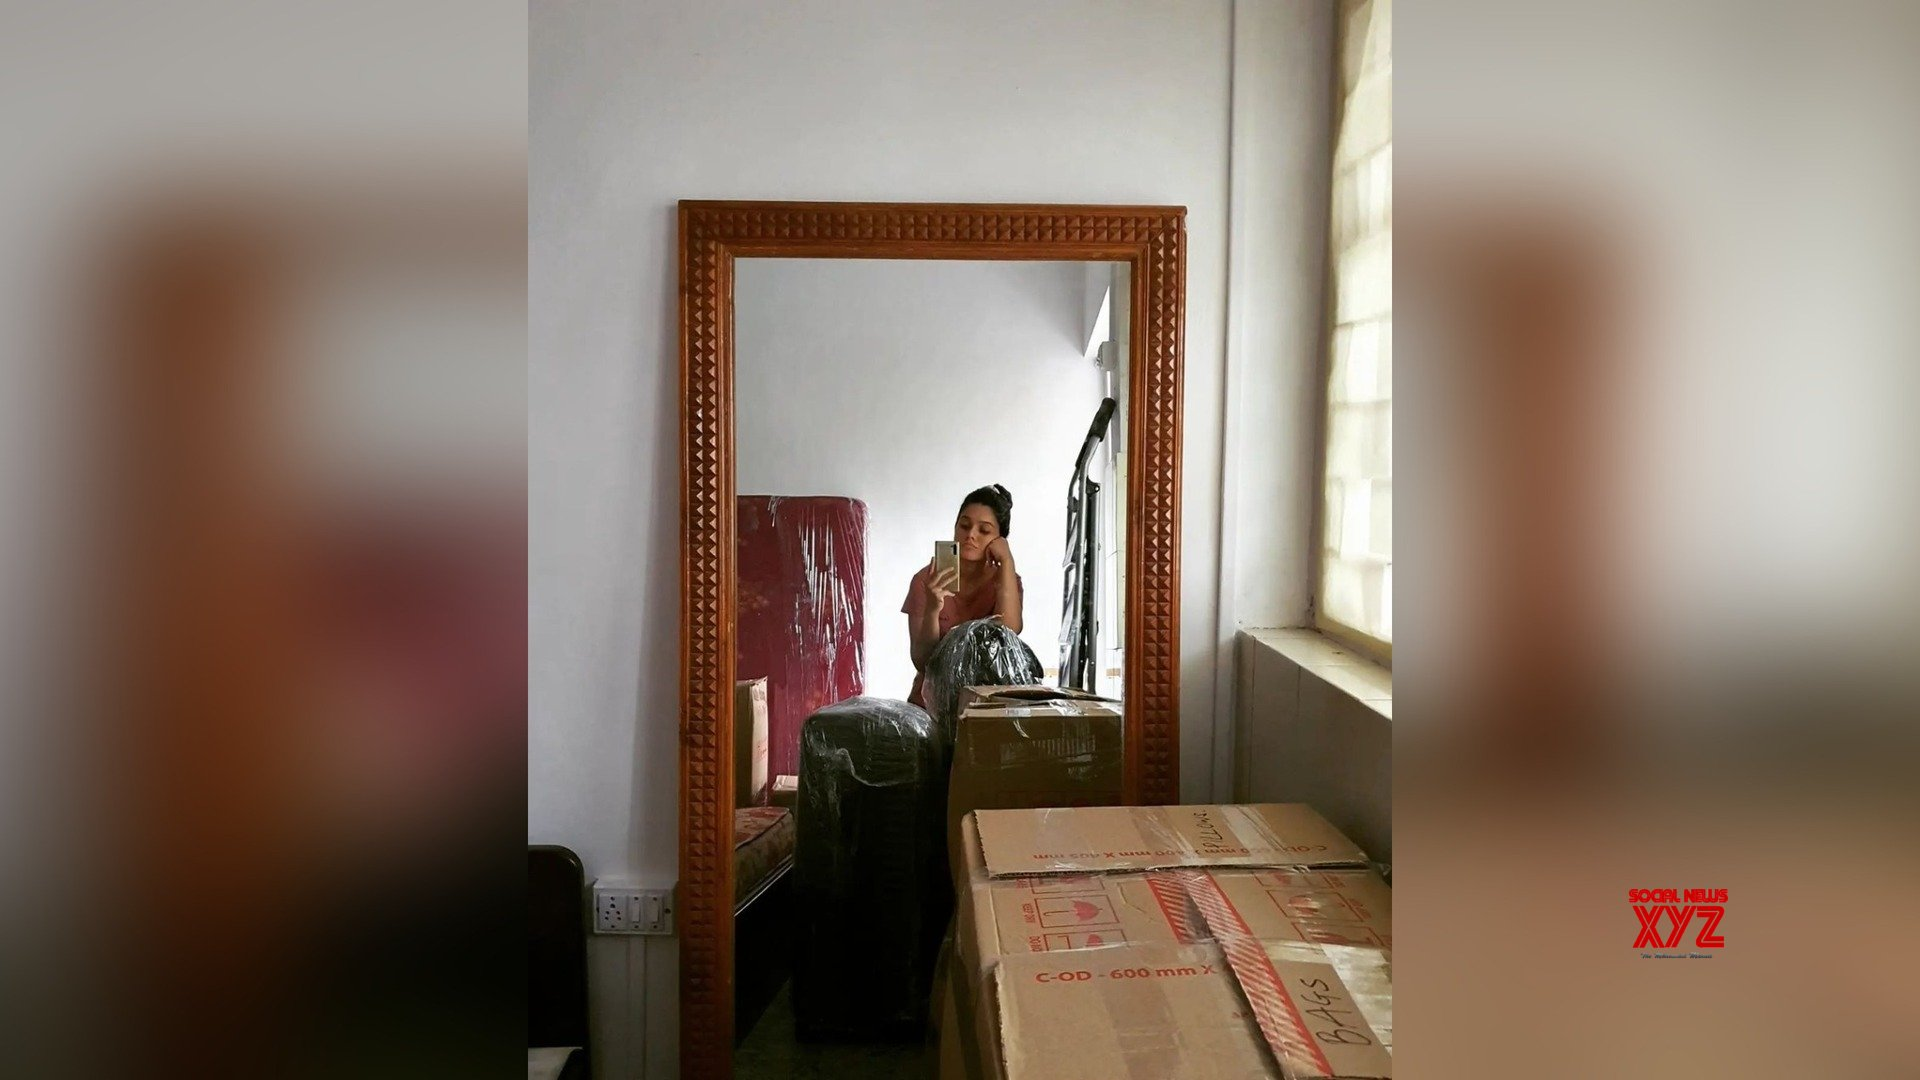 Rashmi Agdekar shares a glimpse of her new humble abode and the struggle of unpacking stuff but nature's view turns out to be her motivation